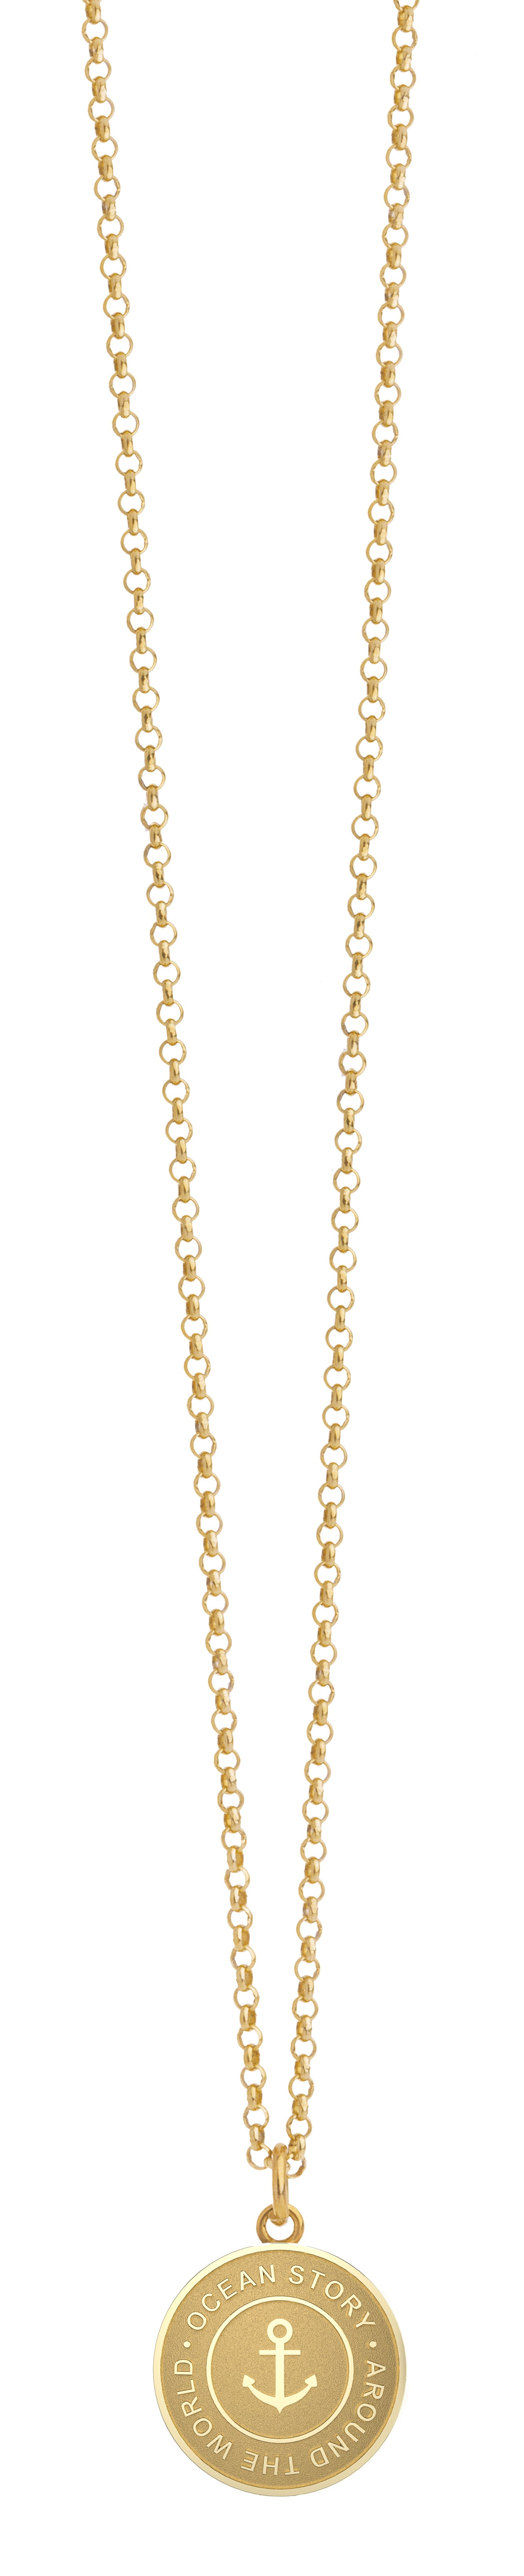 Travel Necklace in Gelbgold